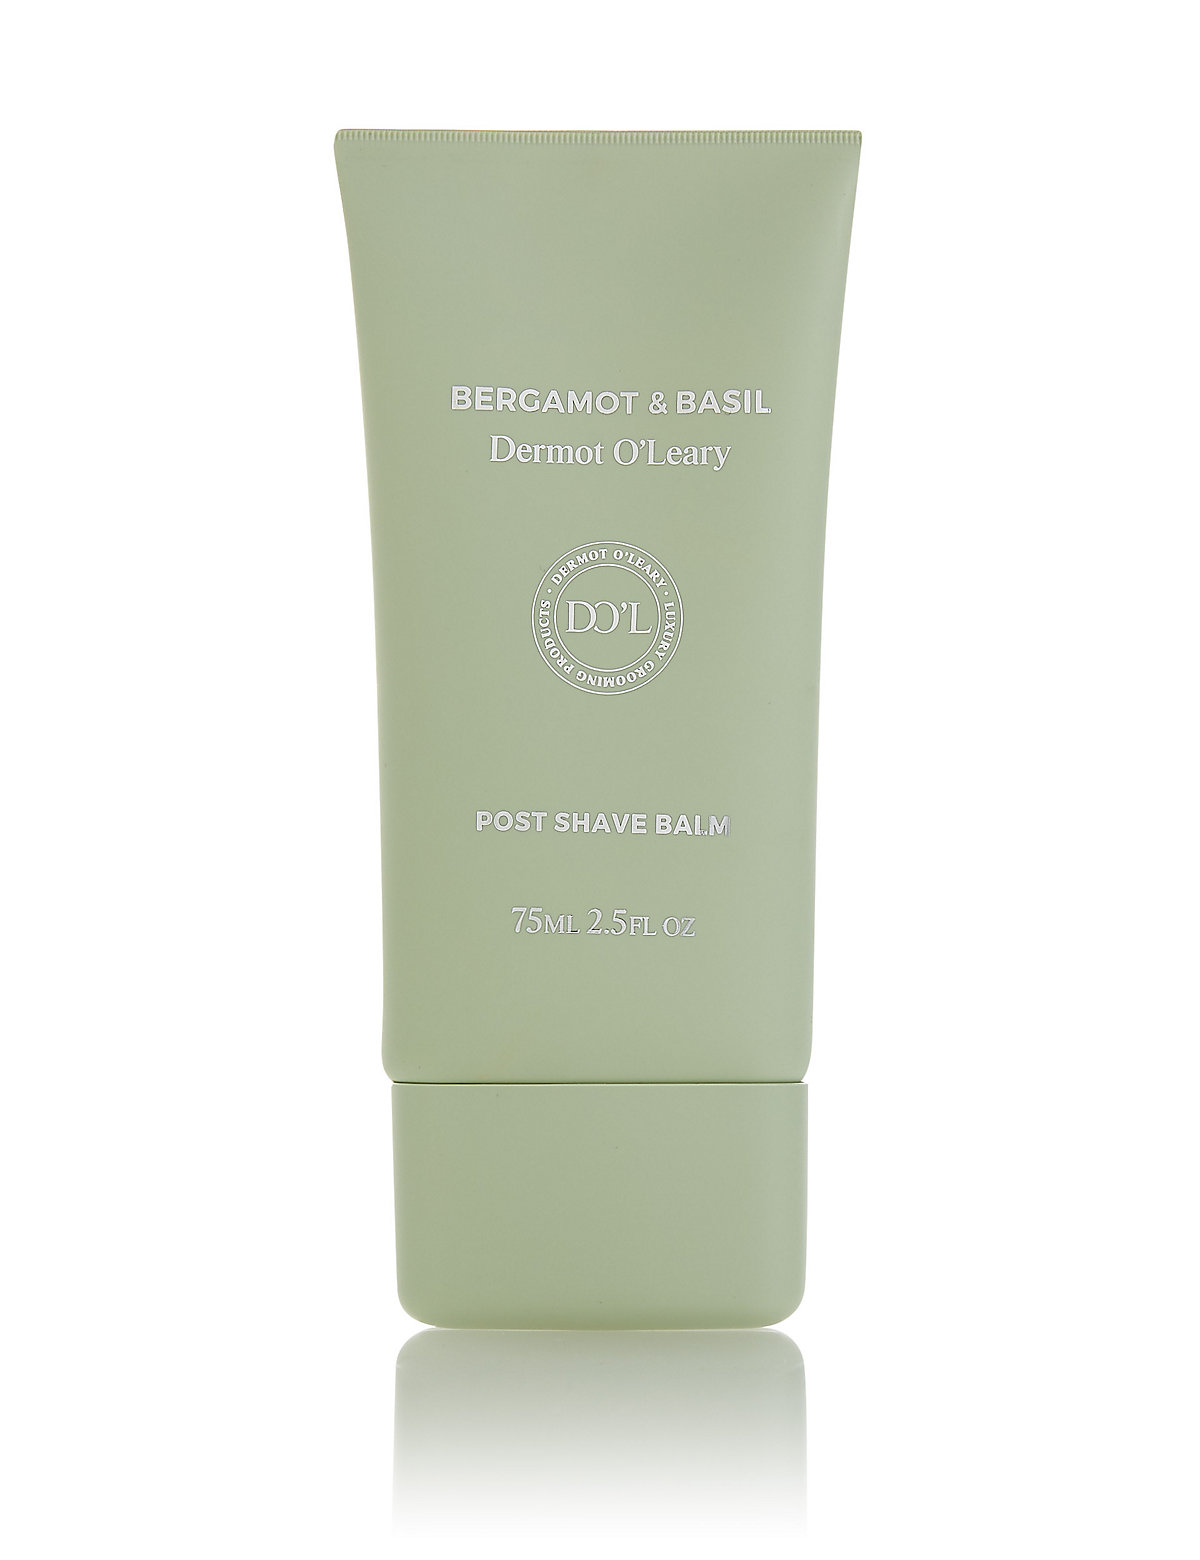 Dermot O'Leary Bergamot & Basil Post Shave Balm 75ml